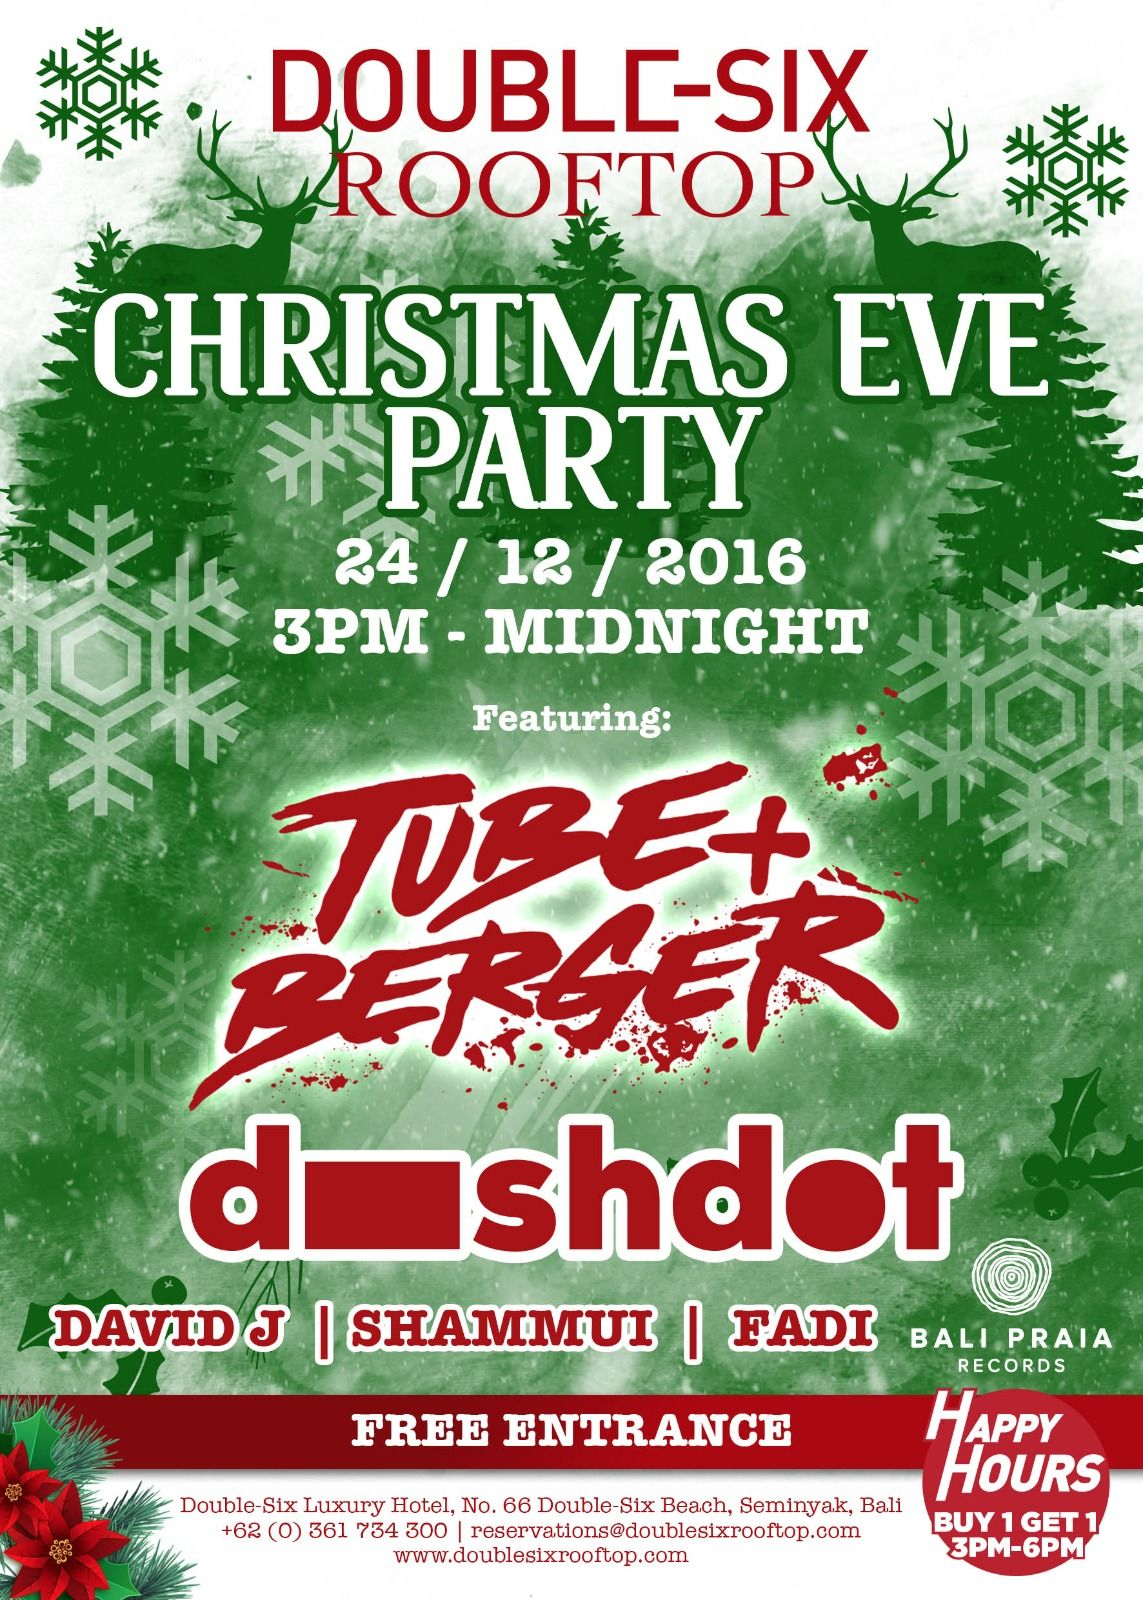 Where To Party On Christmas Eve Check Out Some Of The Coolest Parties Happening In Bali On 24th December In The Link Below And Book Now And For Your Stay In